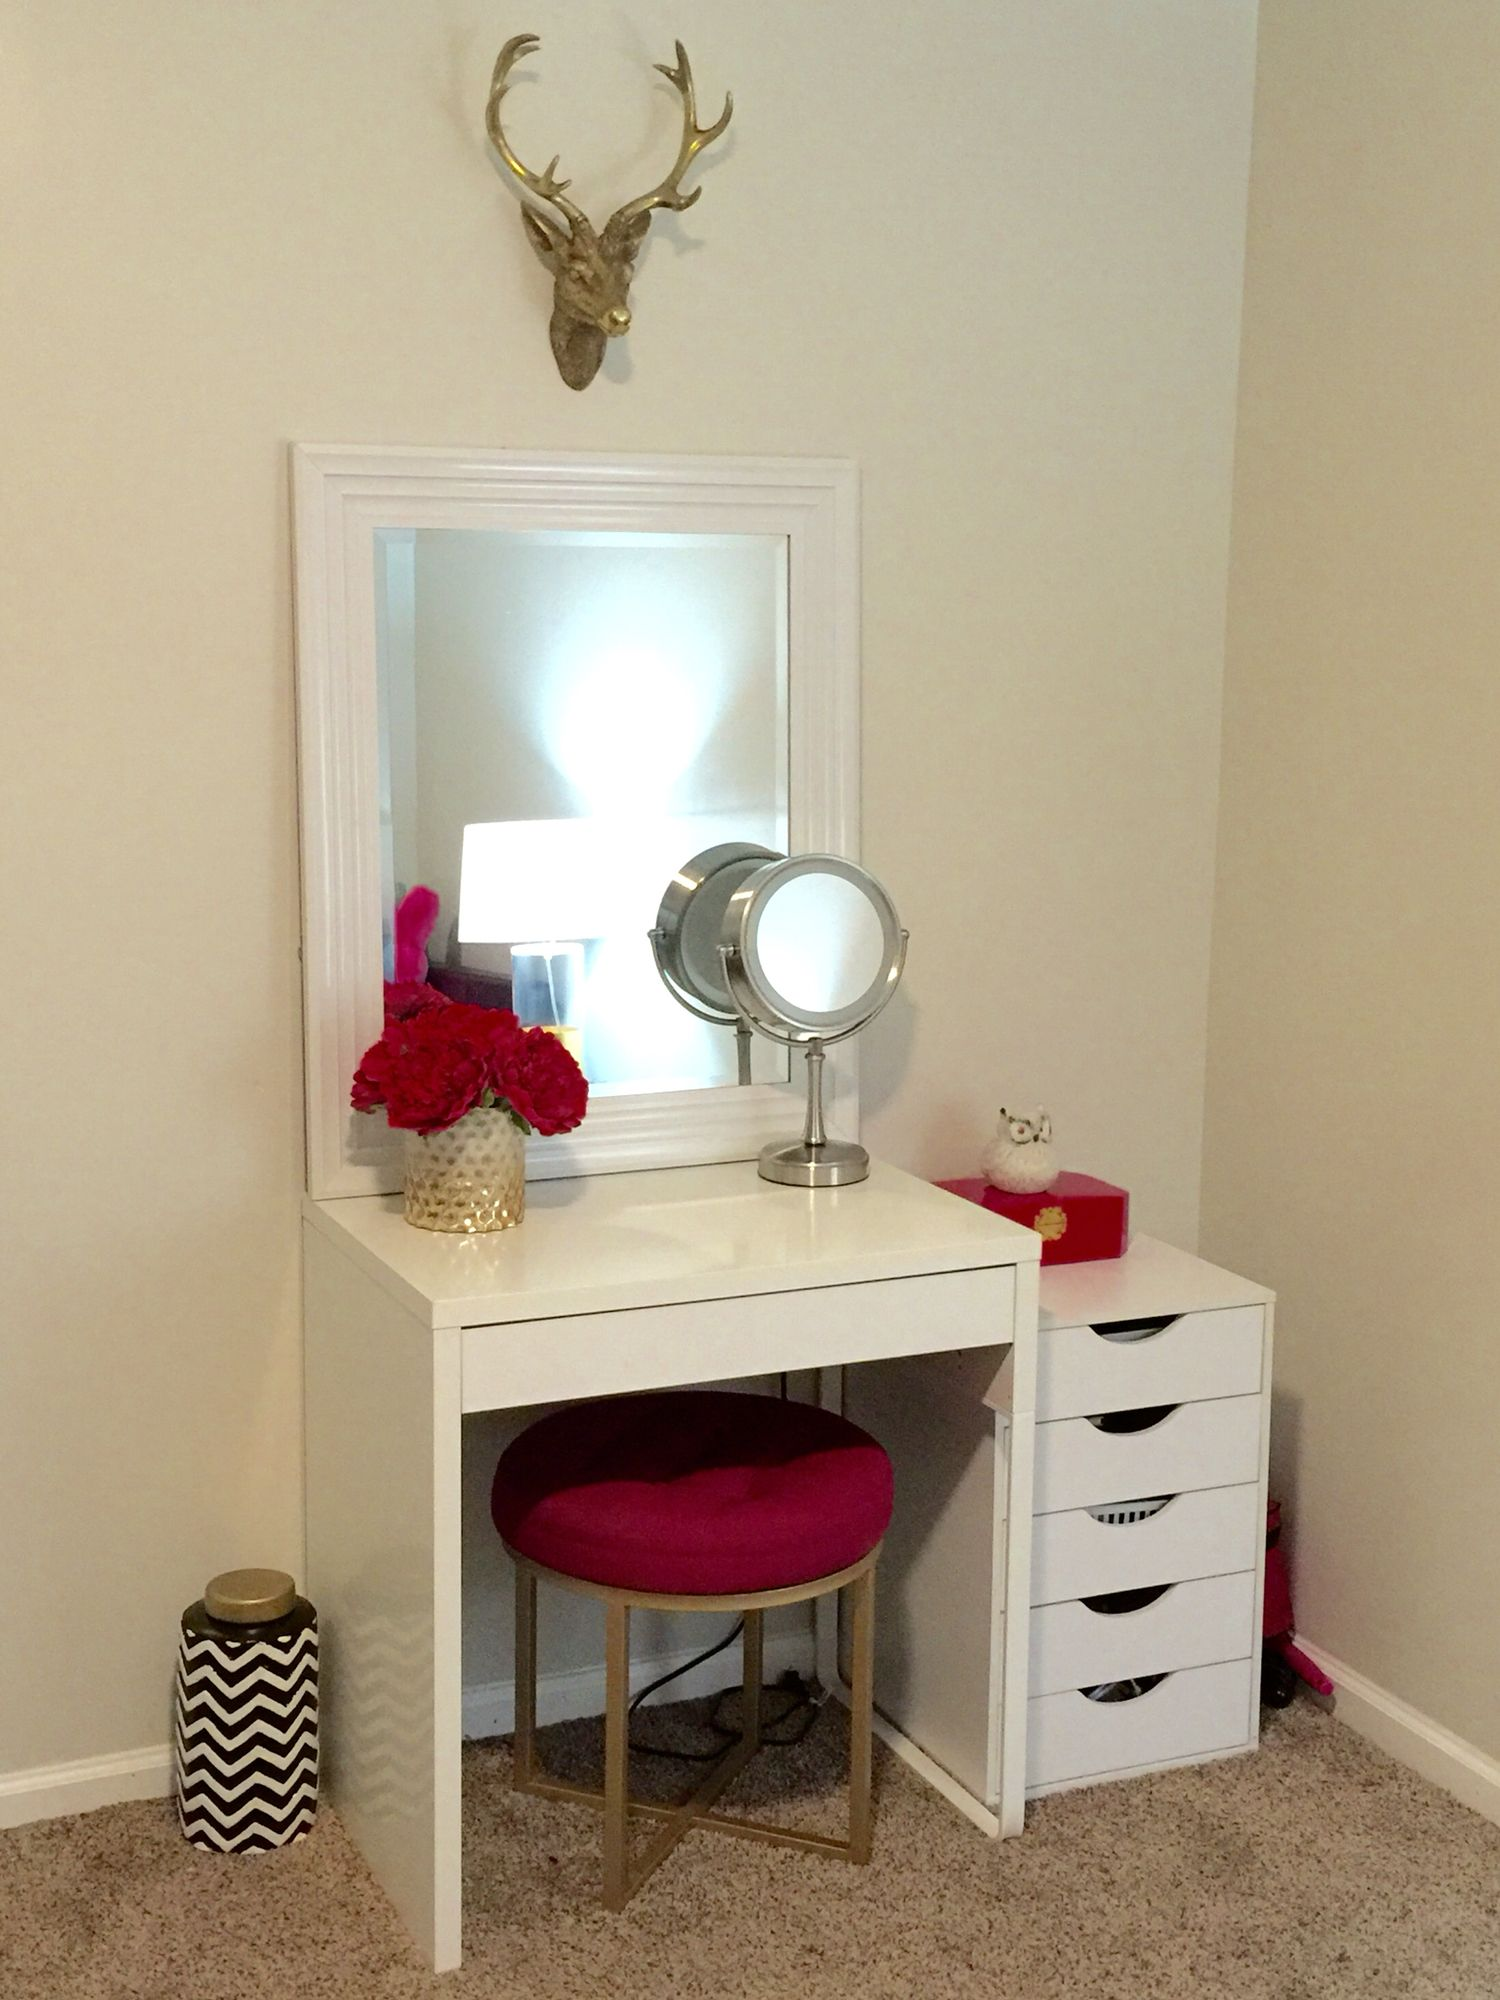 3 Best Makeup Vanities & Cases for Stylish Bedroom  Vanity decor